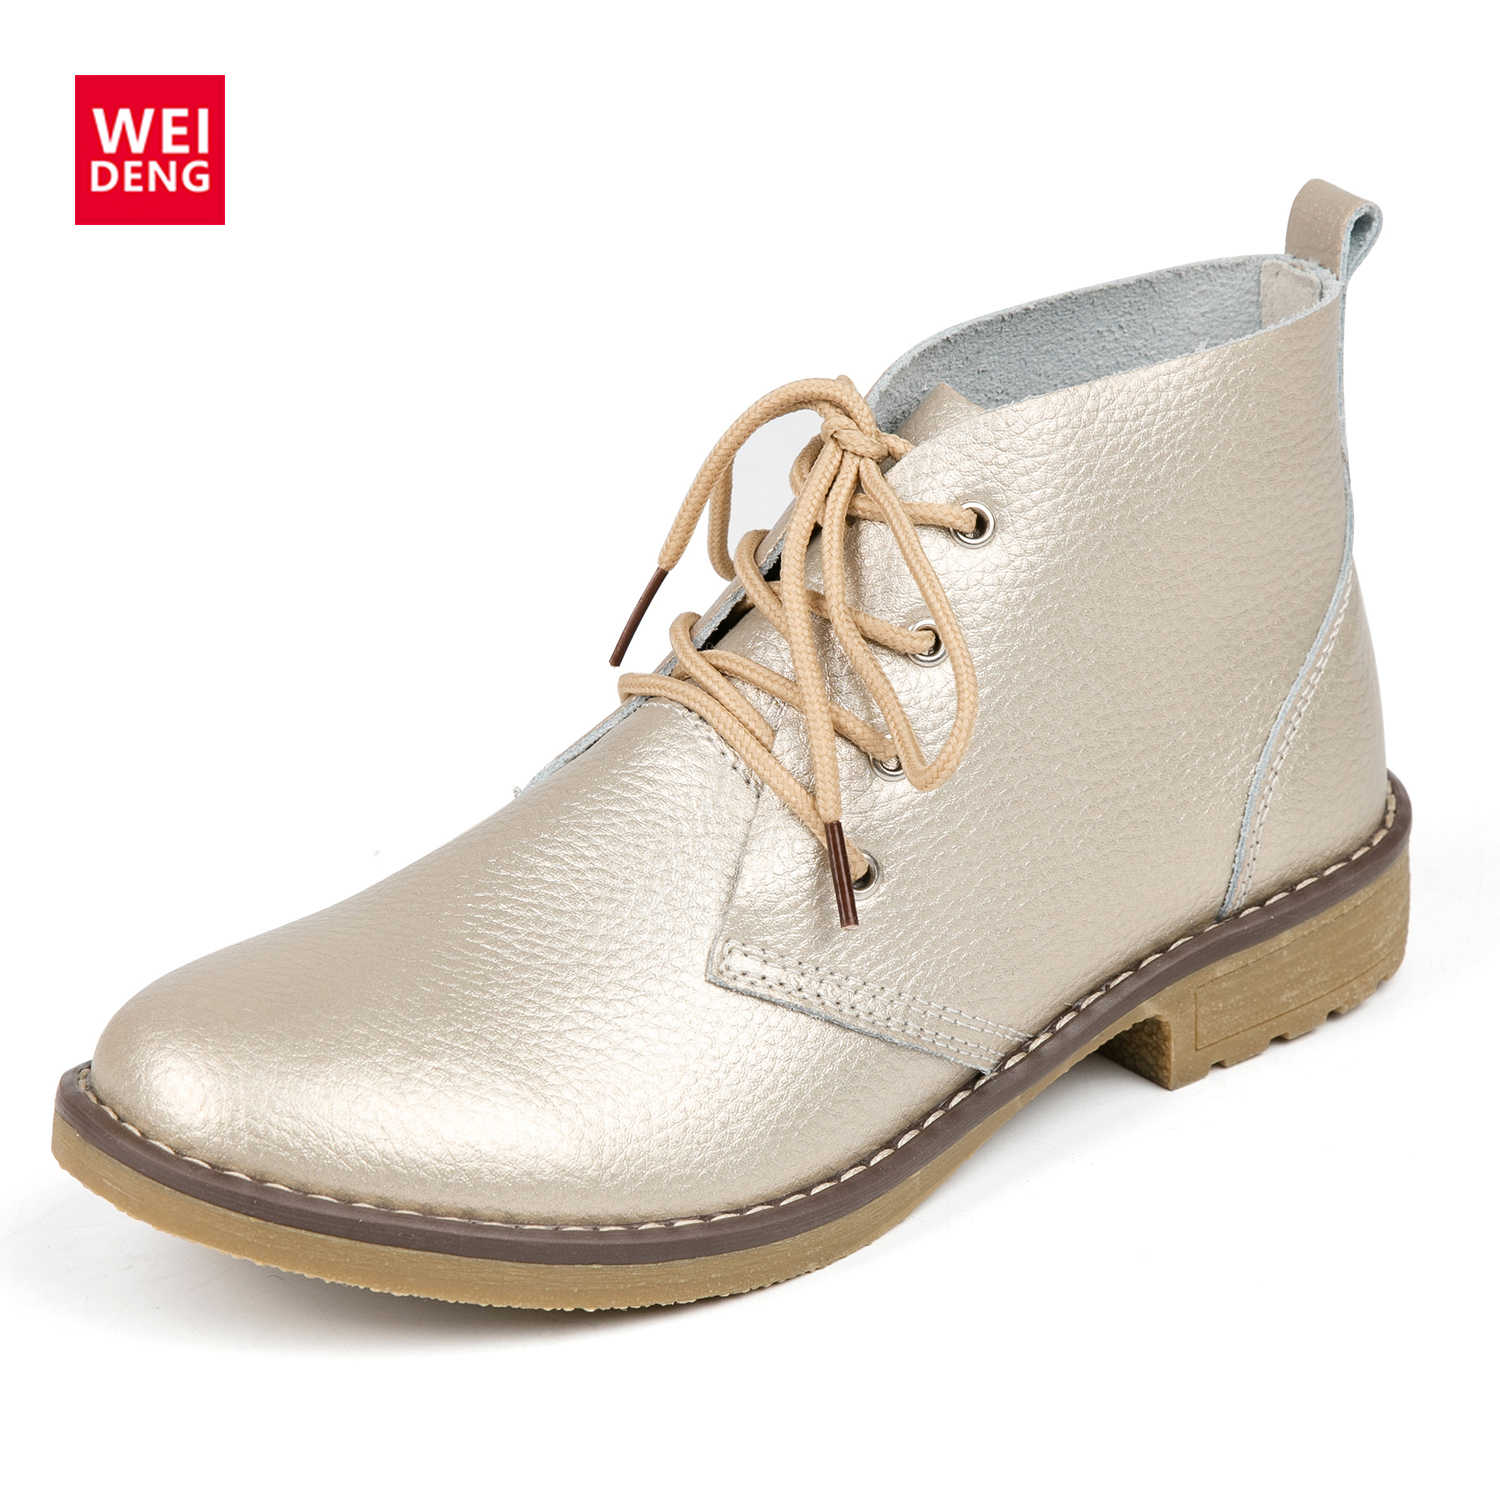 Detail Feedback Questions About Weideng Genuine Leather Ankle Boots